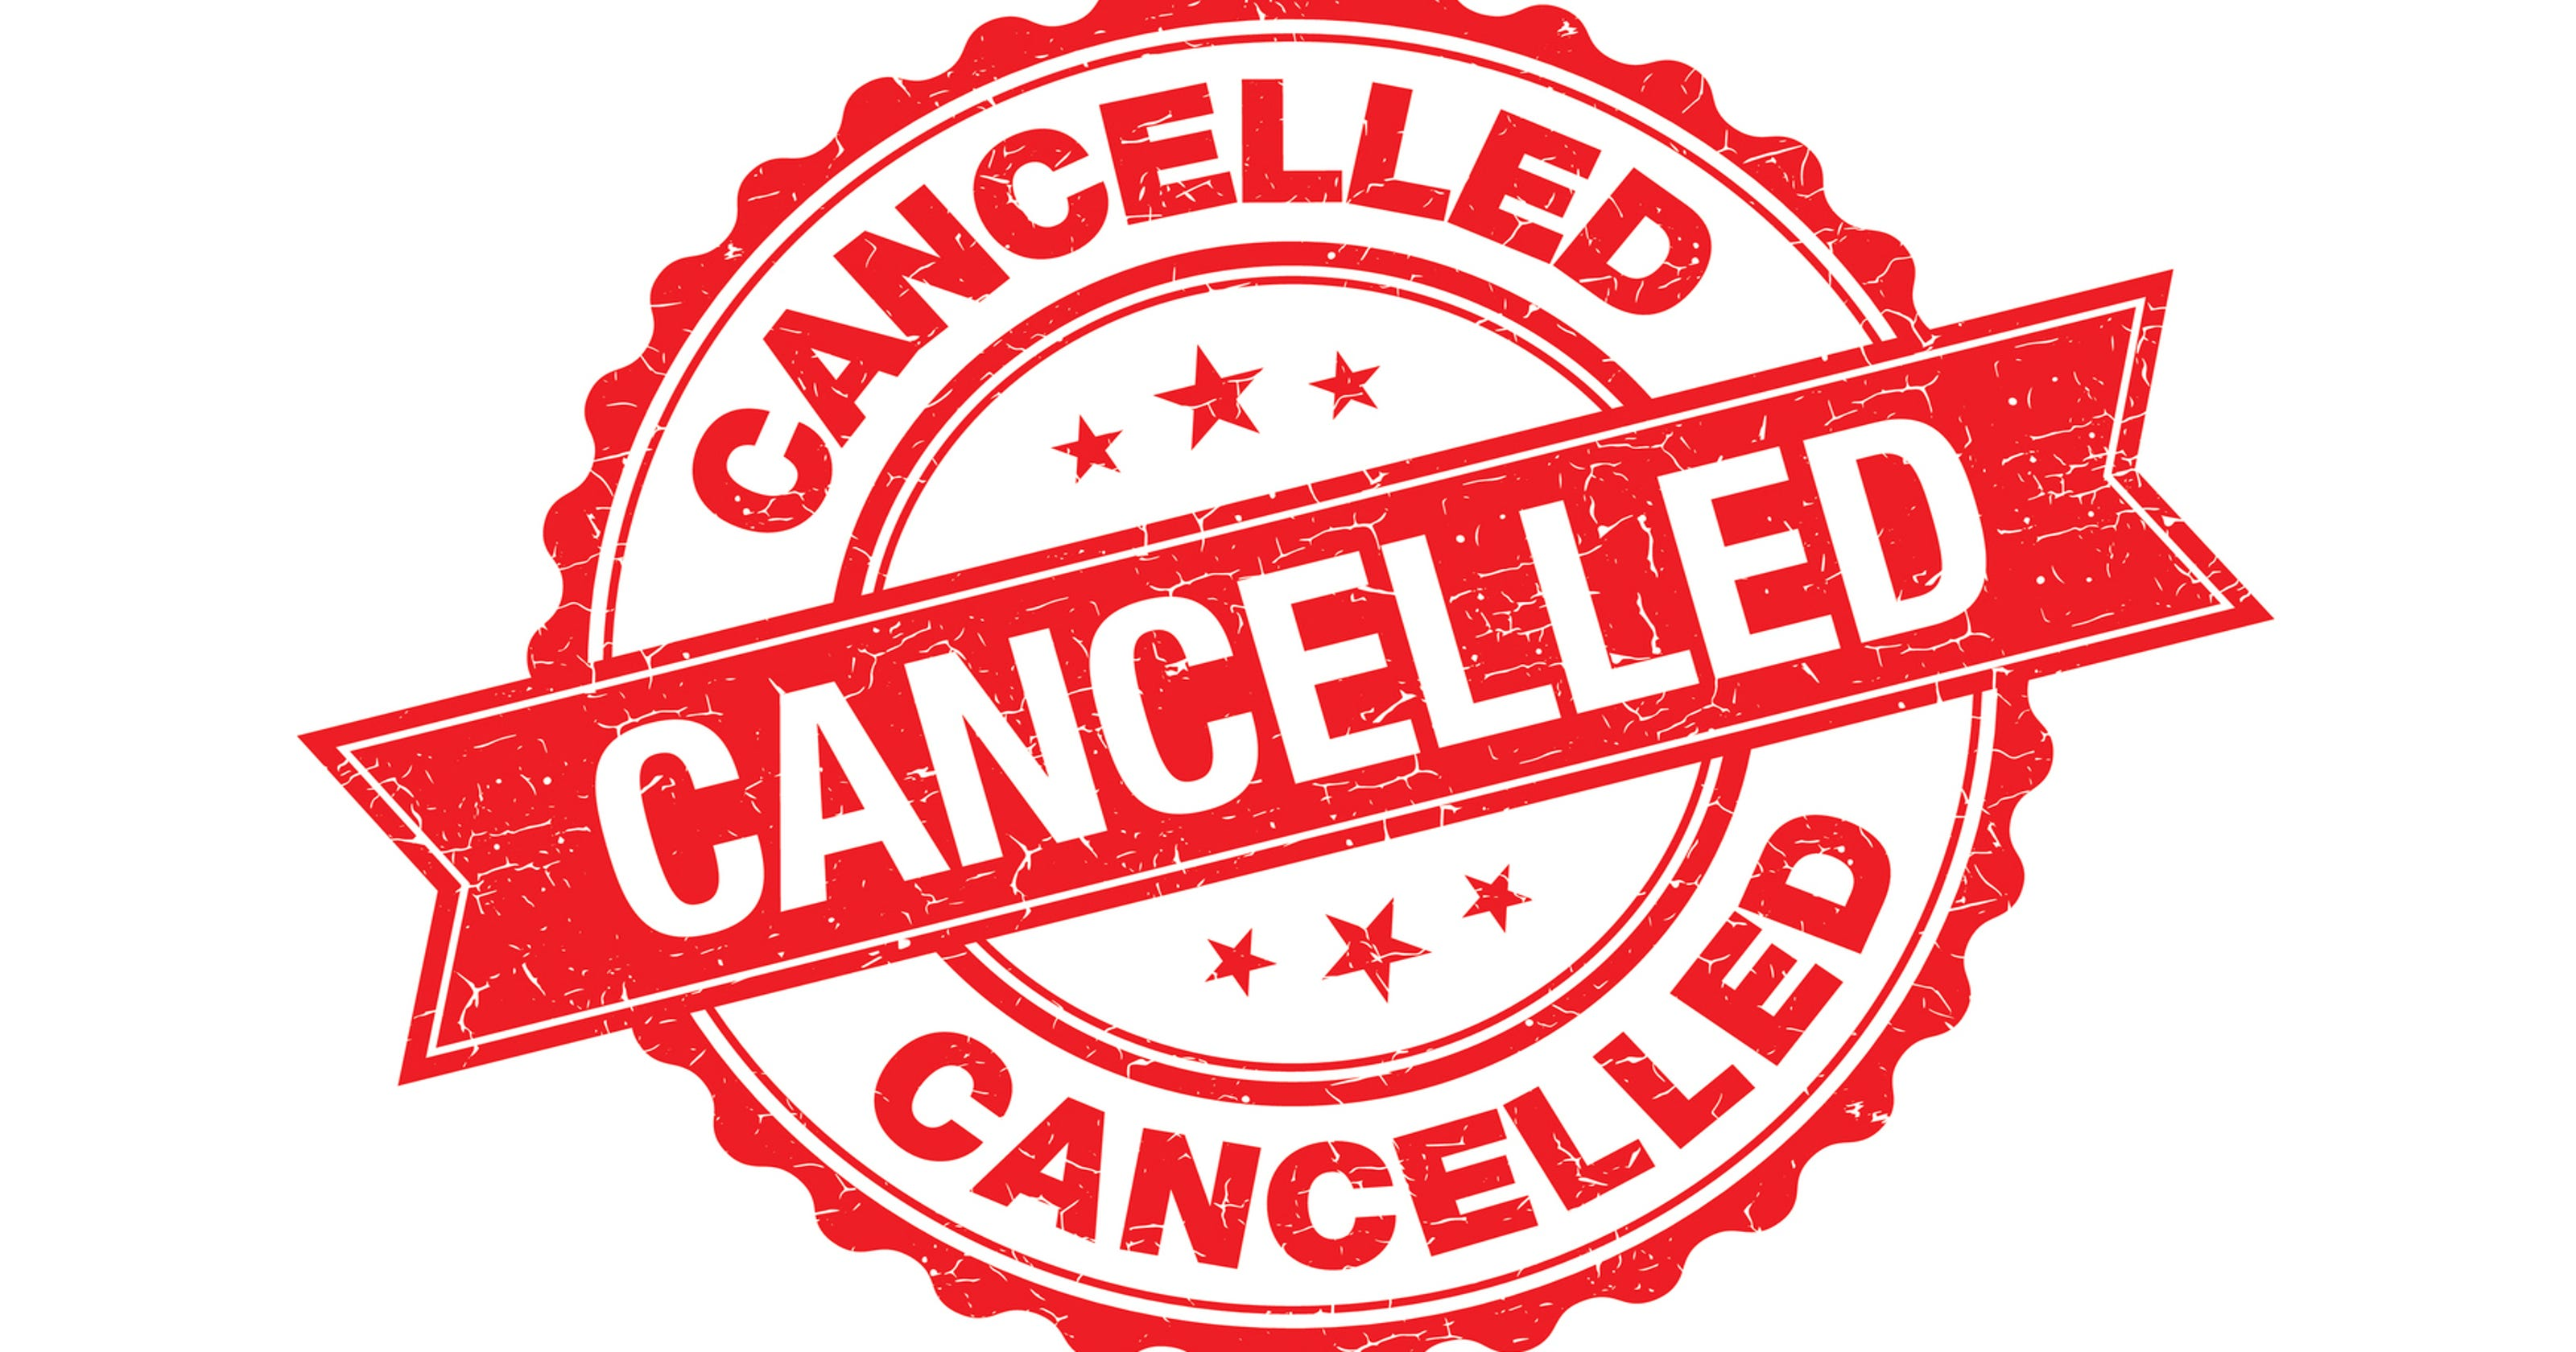 cancelled canceled stamp mass activities wisconsin weather events rubber rapids winter clip youth parish due cancellations saturday vector grunge benefit